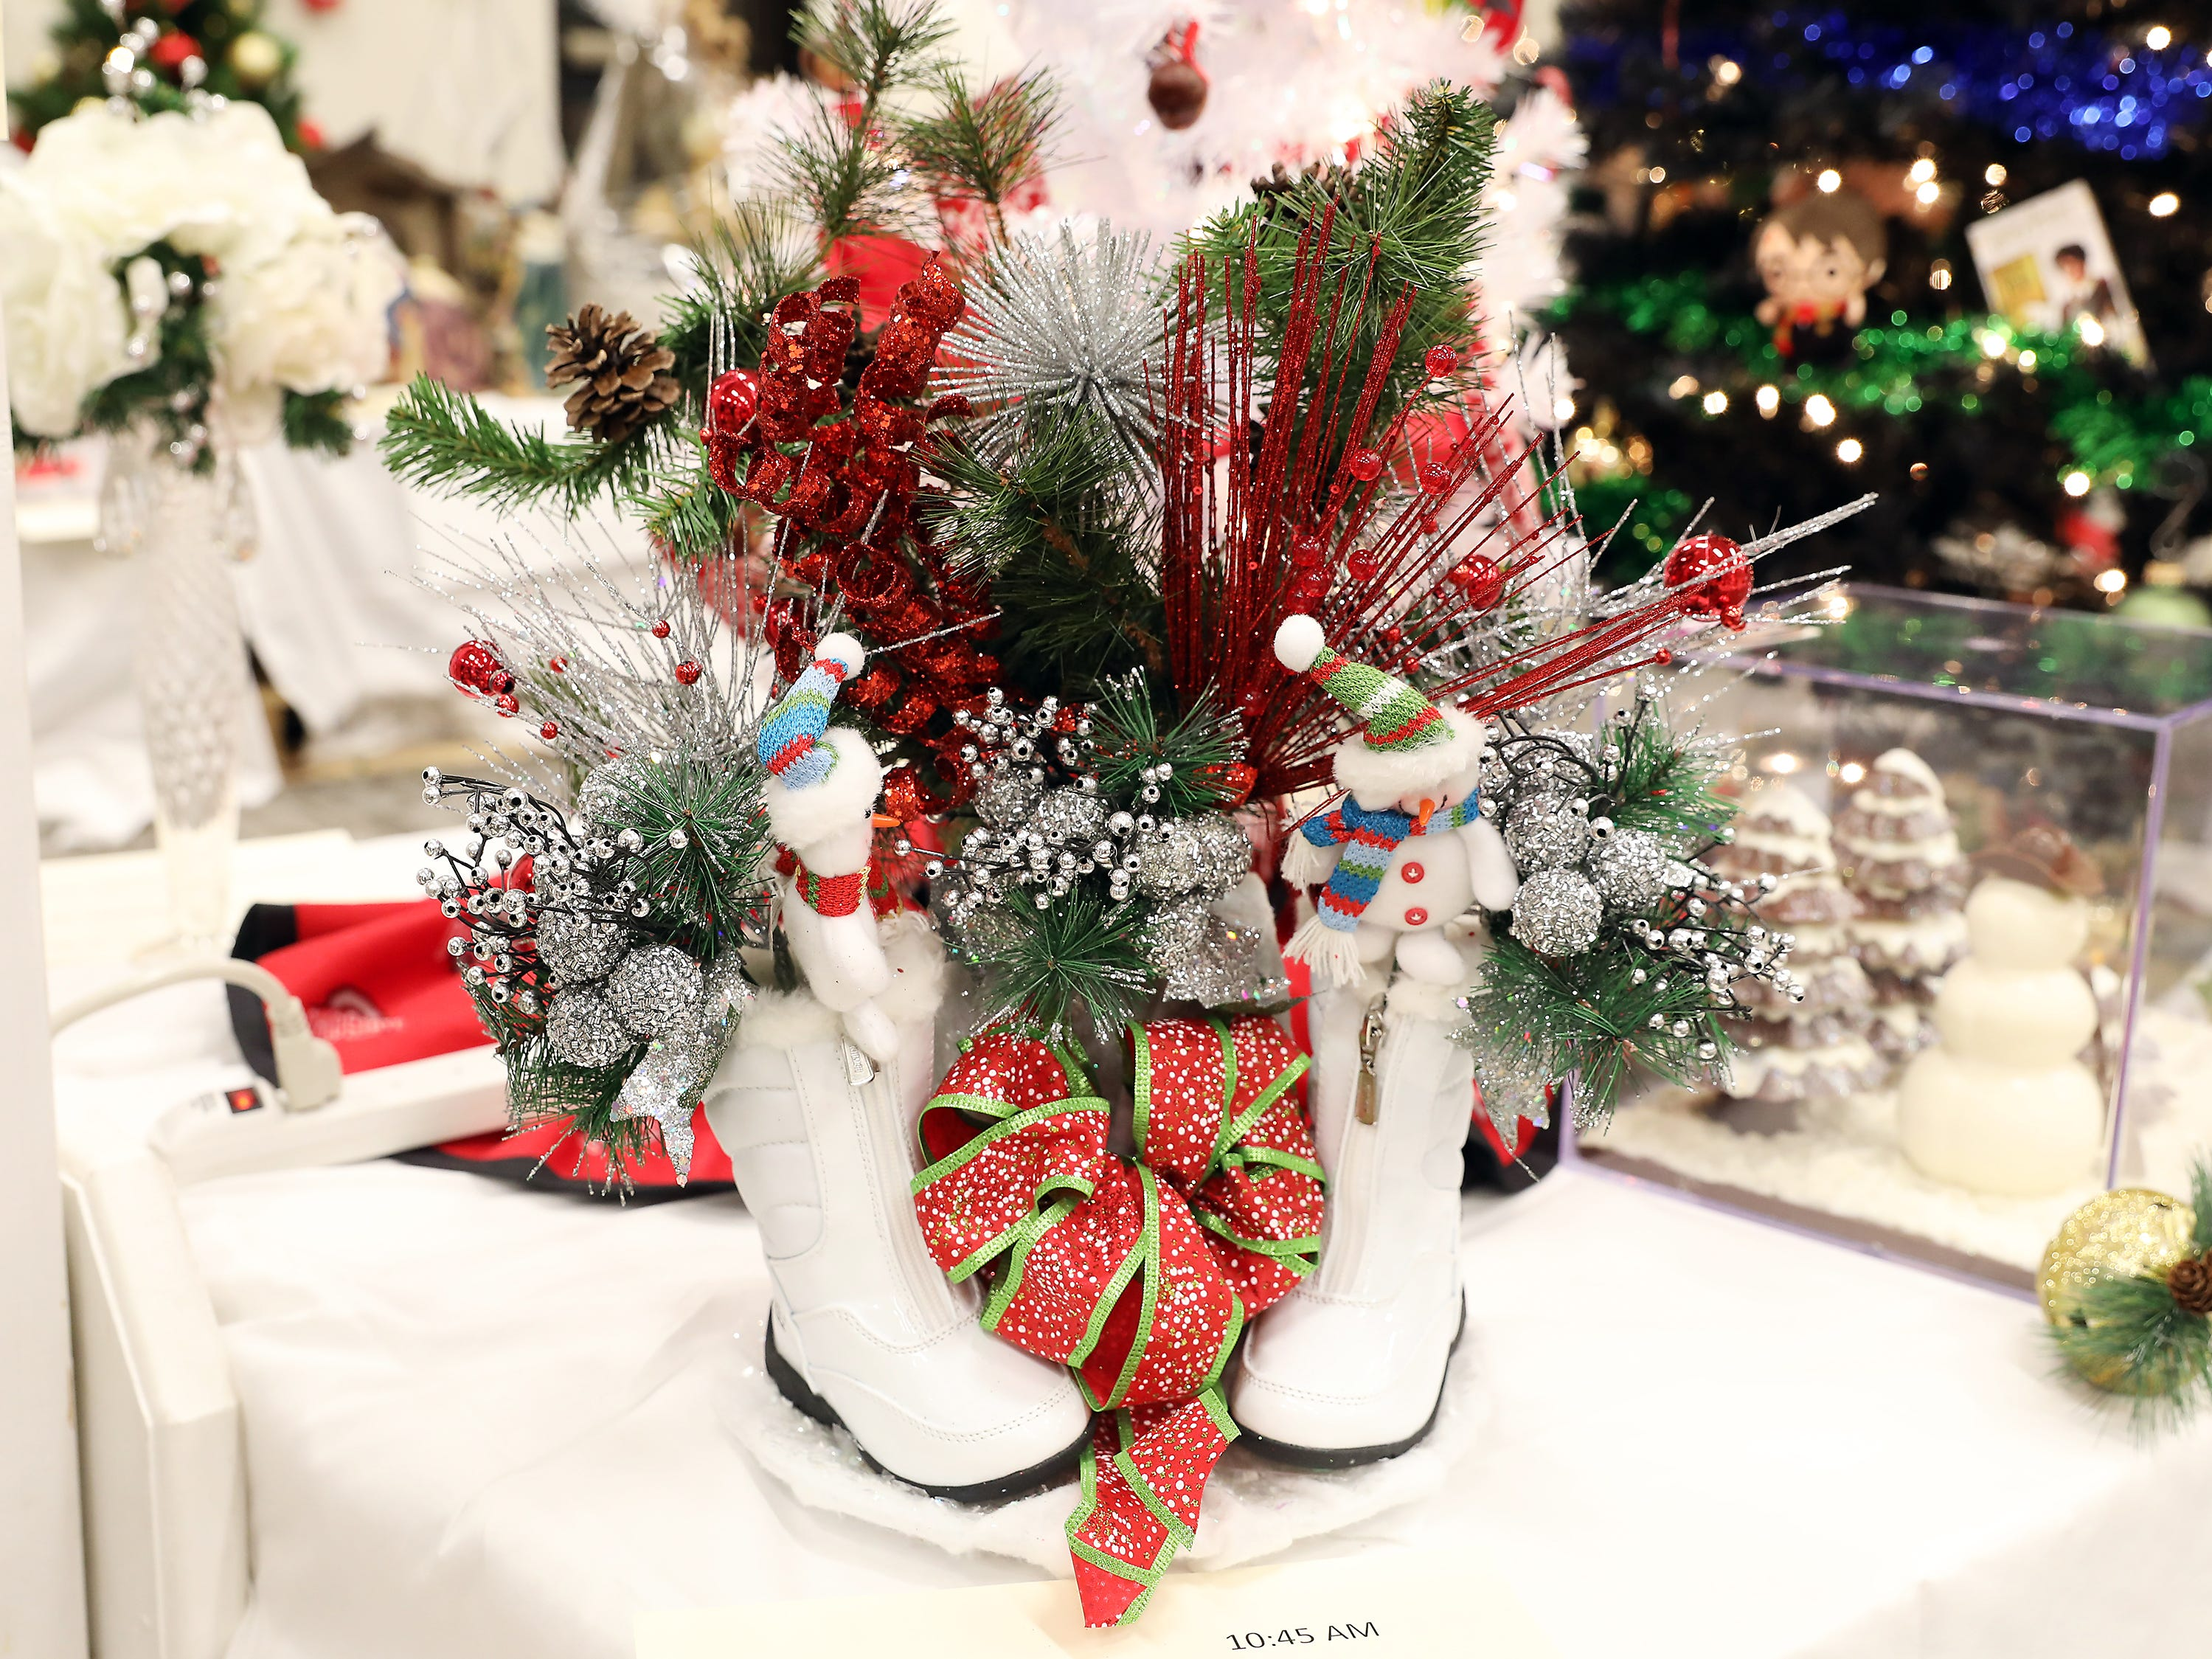 52	10:45 AM	Shoe Sensation	Centerpiece	Christmas	A holiday centerpiece.		$50 Shoe Shoe Senation gift card, now located at Northpointe Shopping Center!